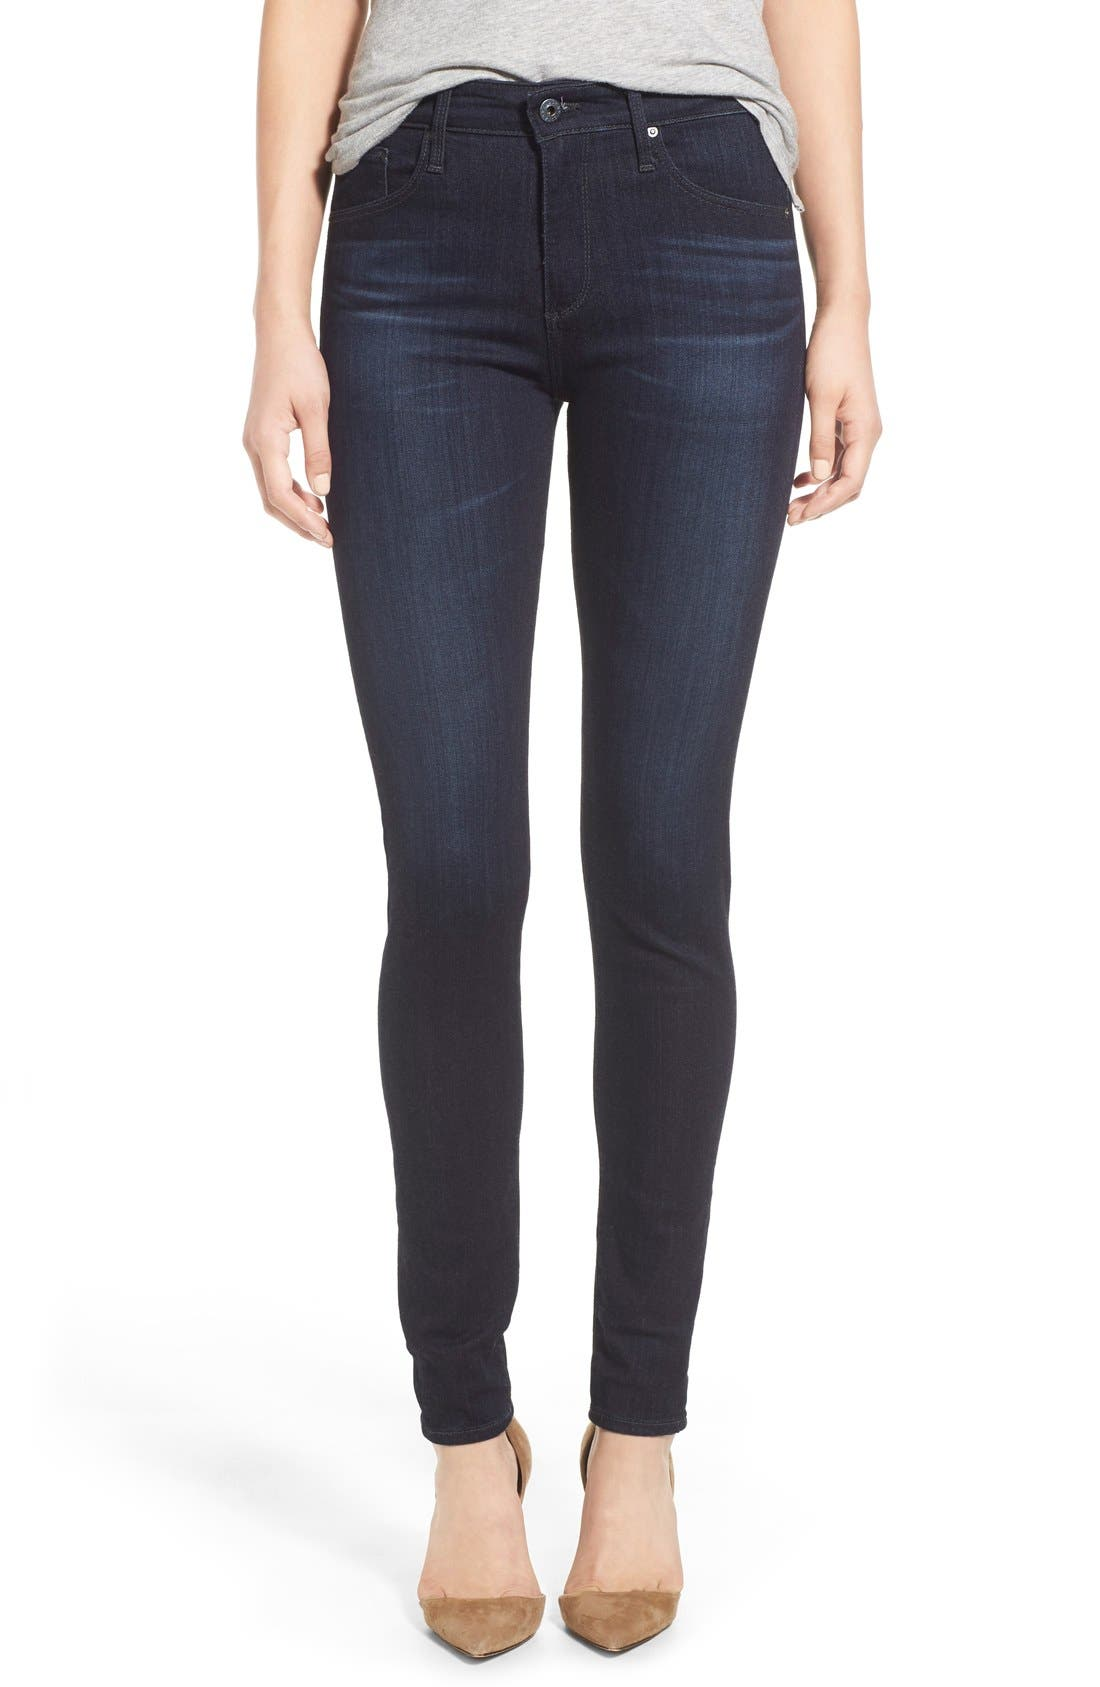 Dark Blue Wash Skinny Jeans for Women | Nordstrom